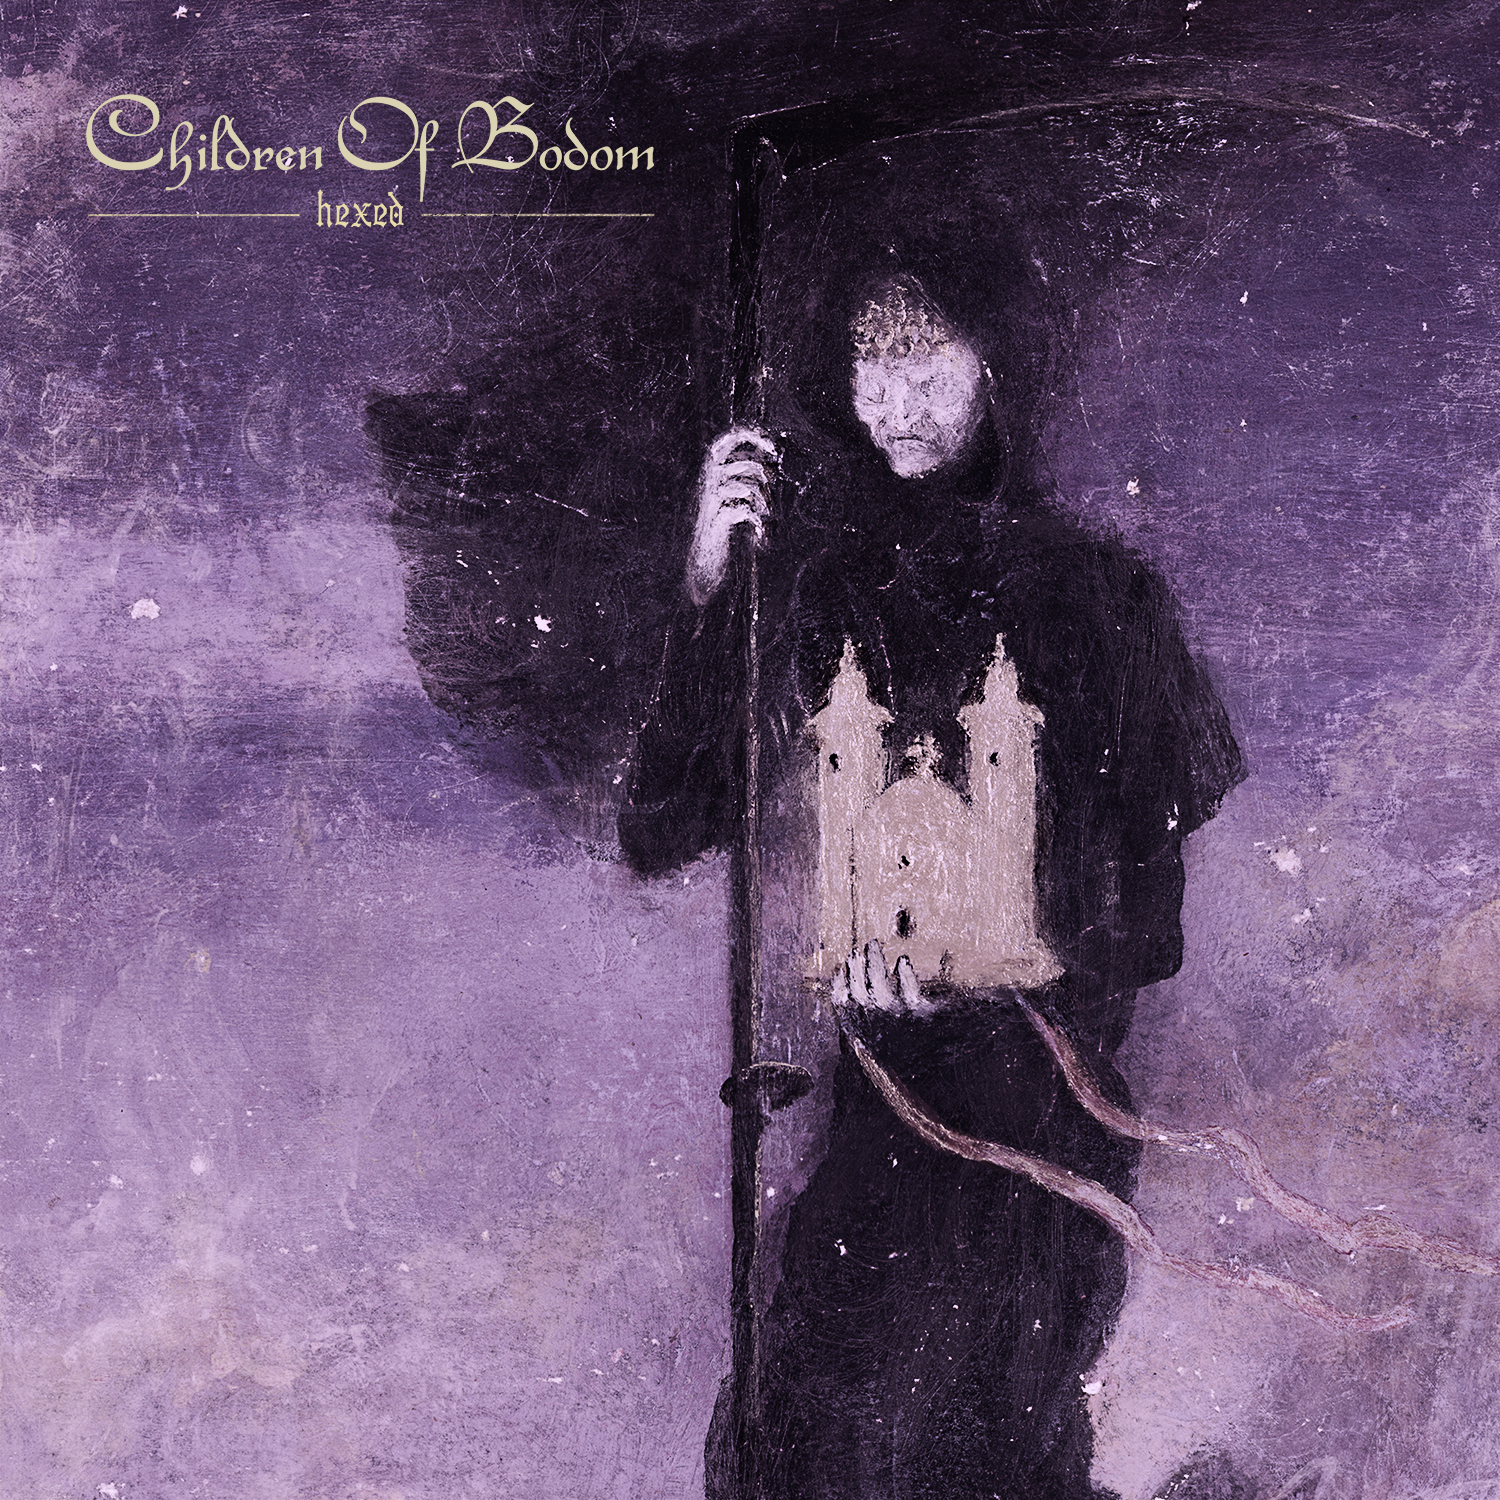 Artwork for Children of Bodom's upcoming new album 'Hexed'.